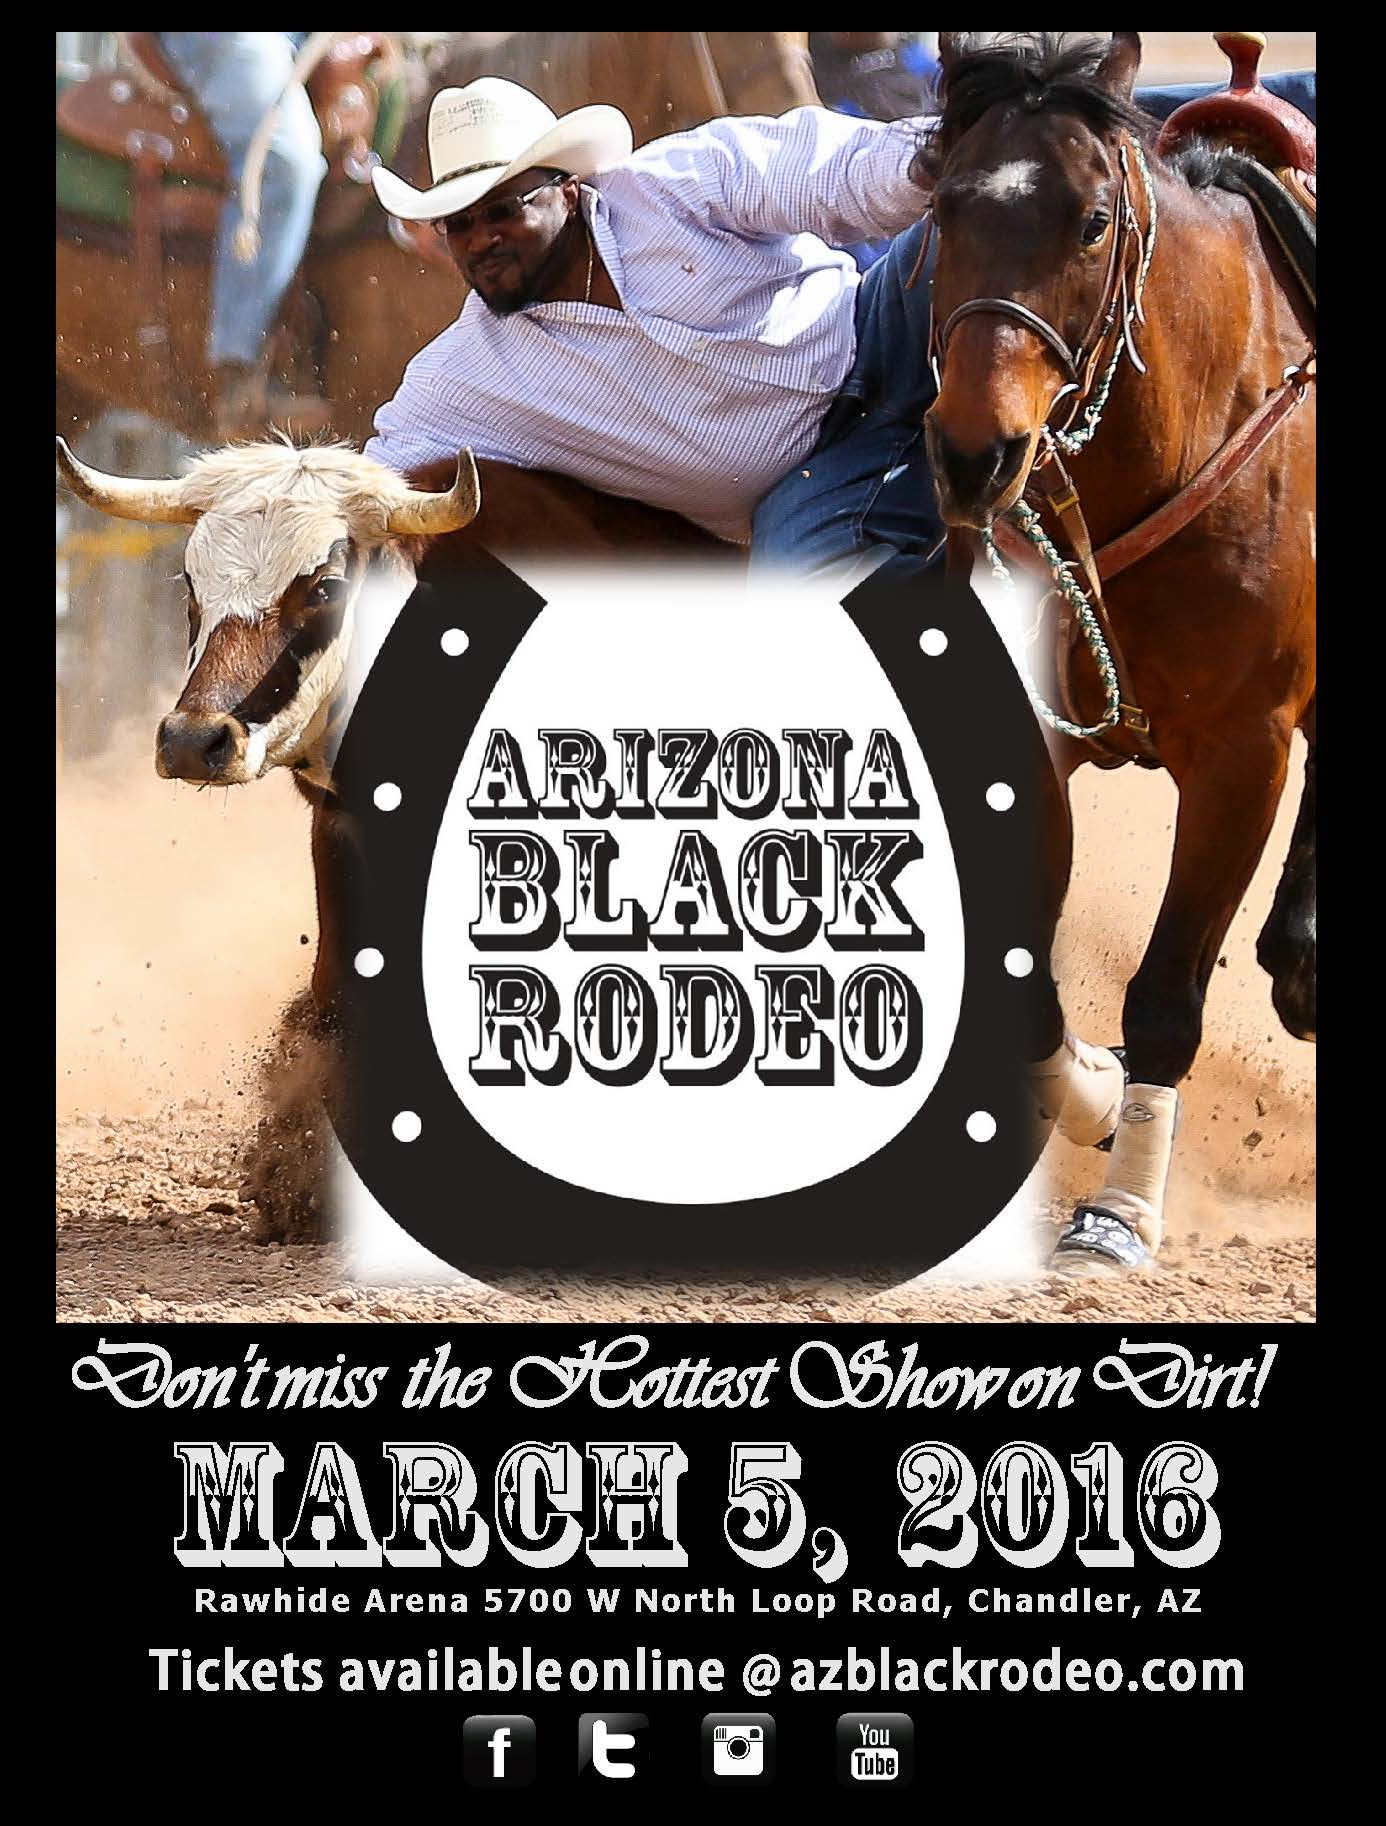 Arizona Black Rodeo 2016 Tickets Sat Mar 5 2016 At 1 00